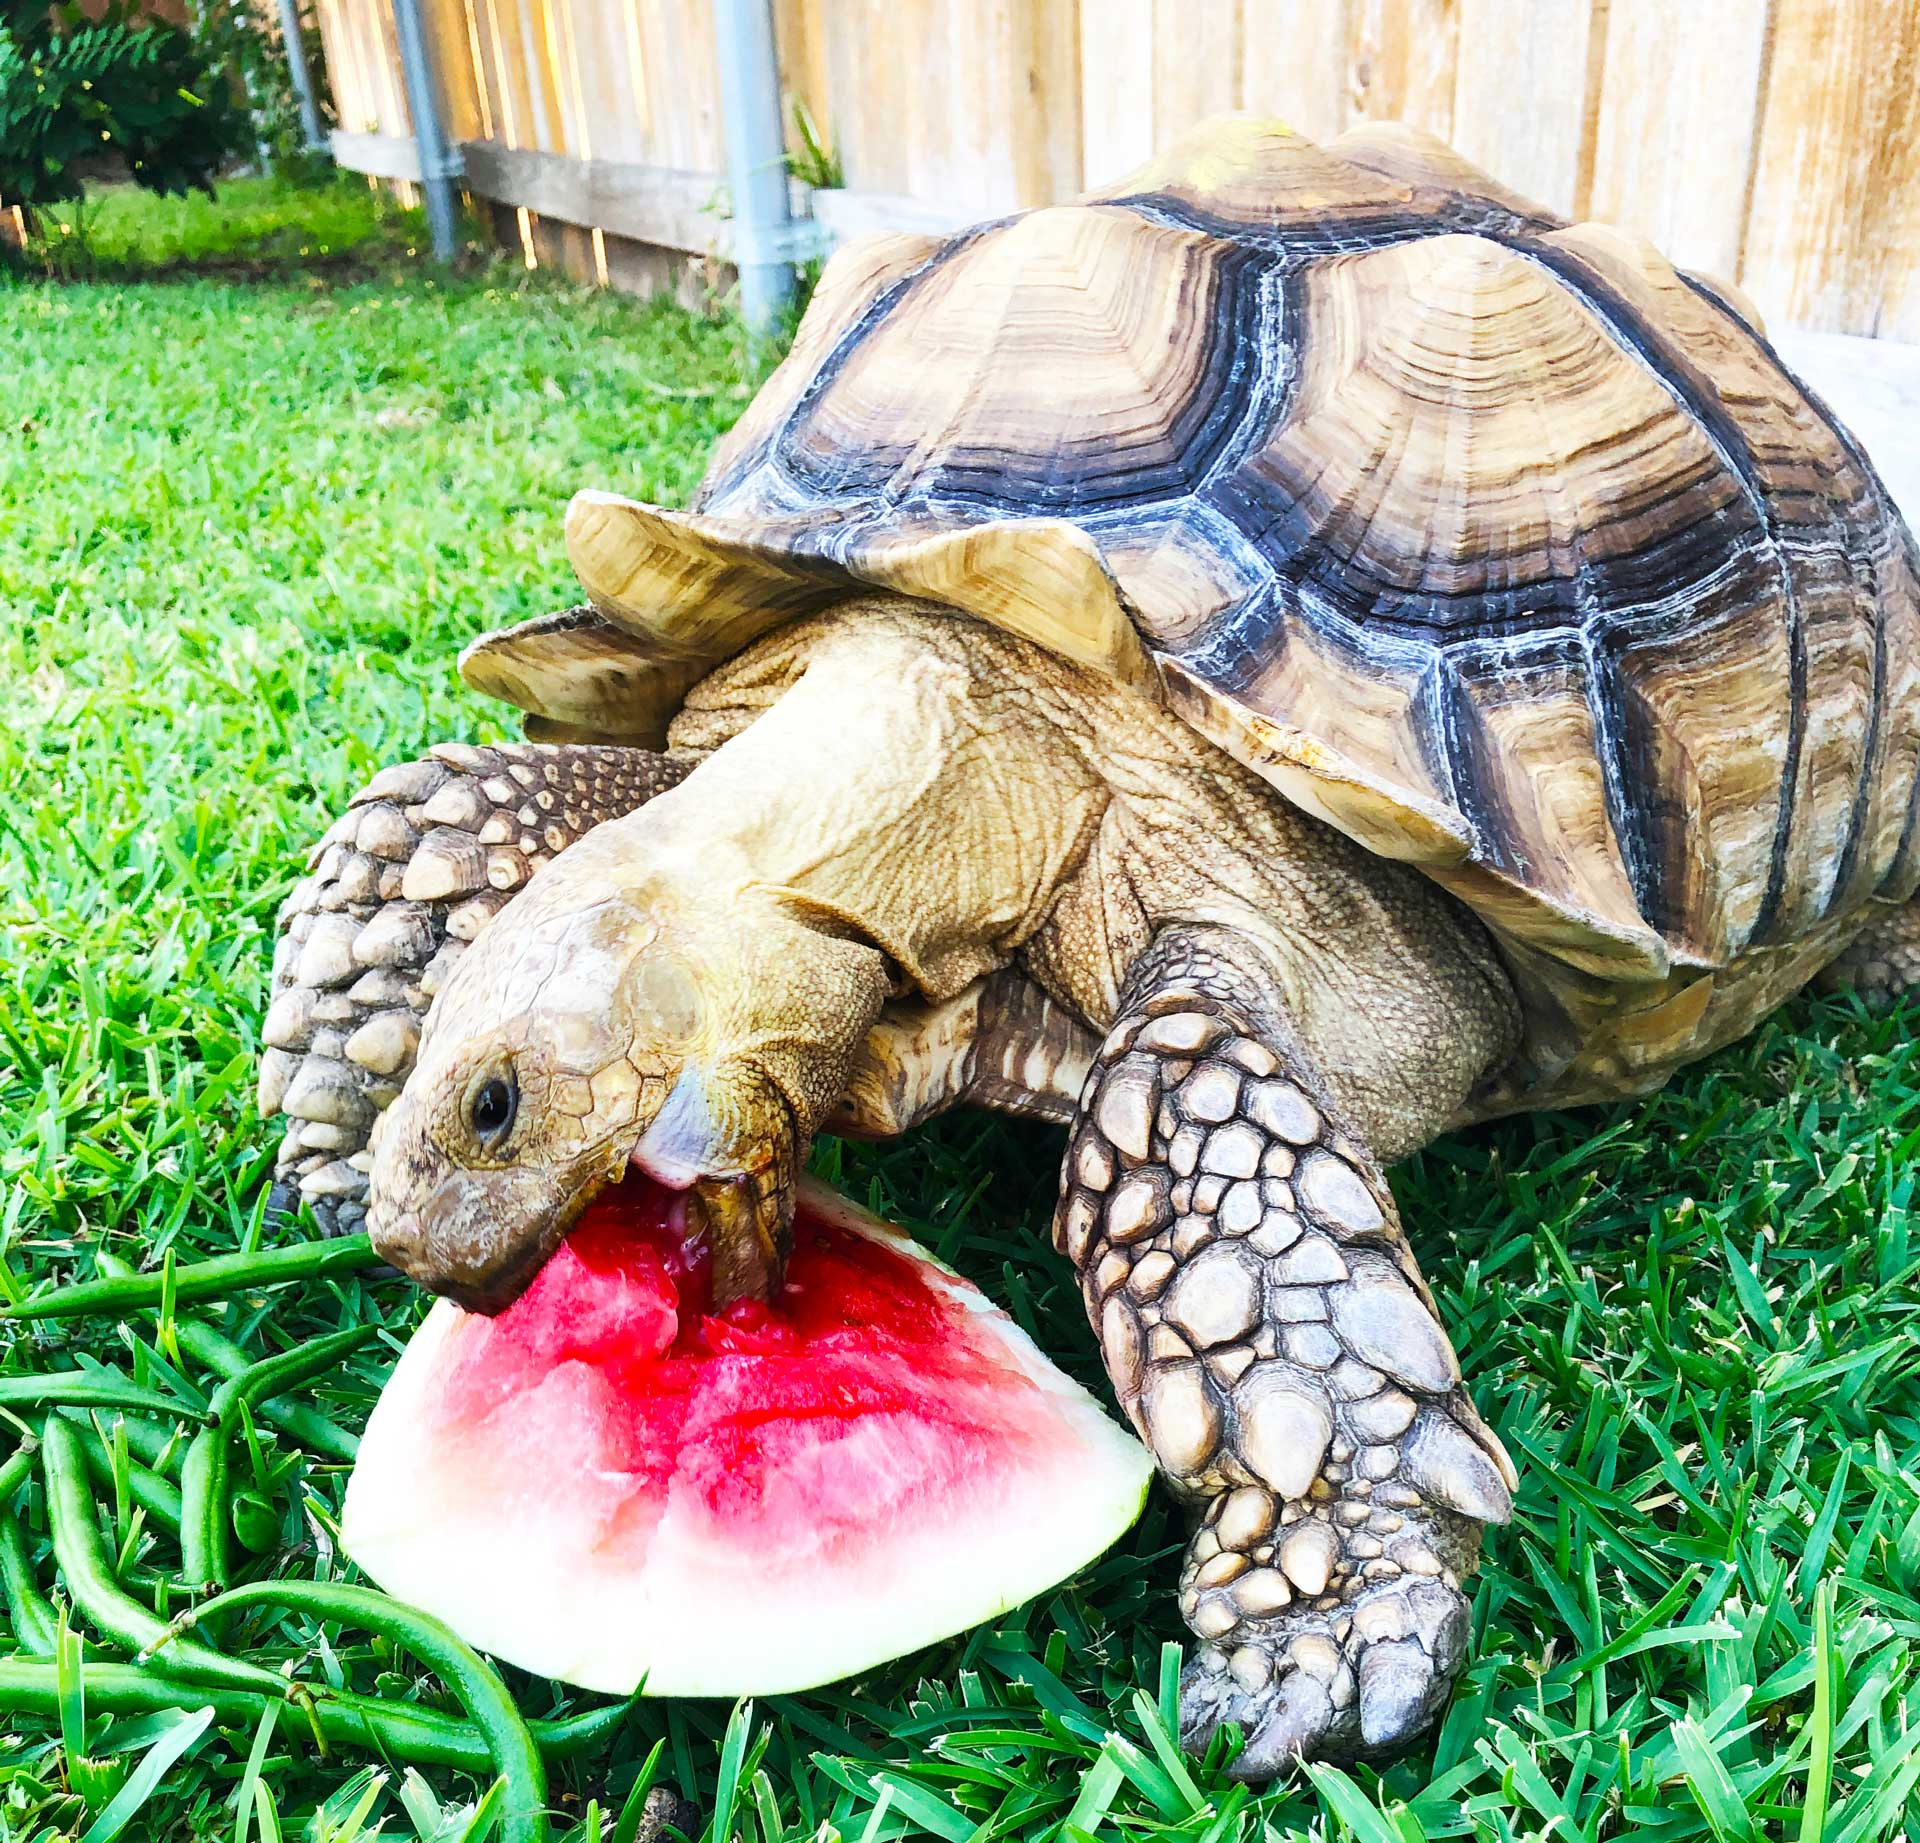 Woody the Tortious